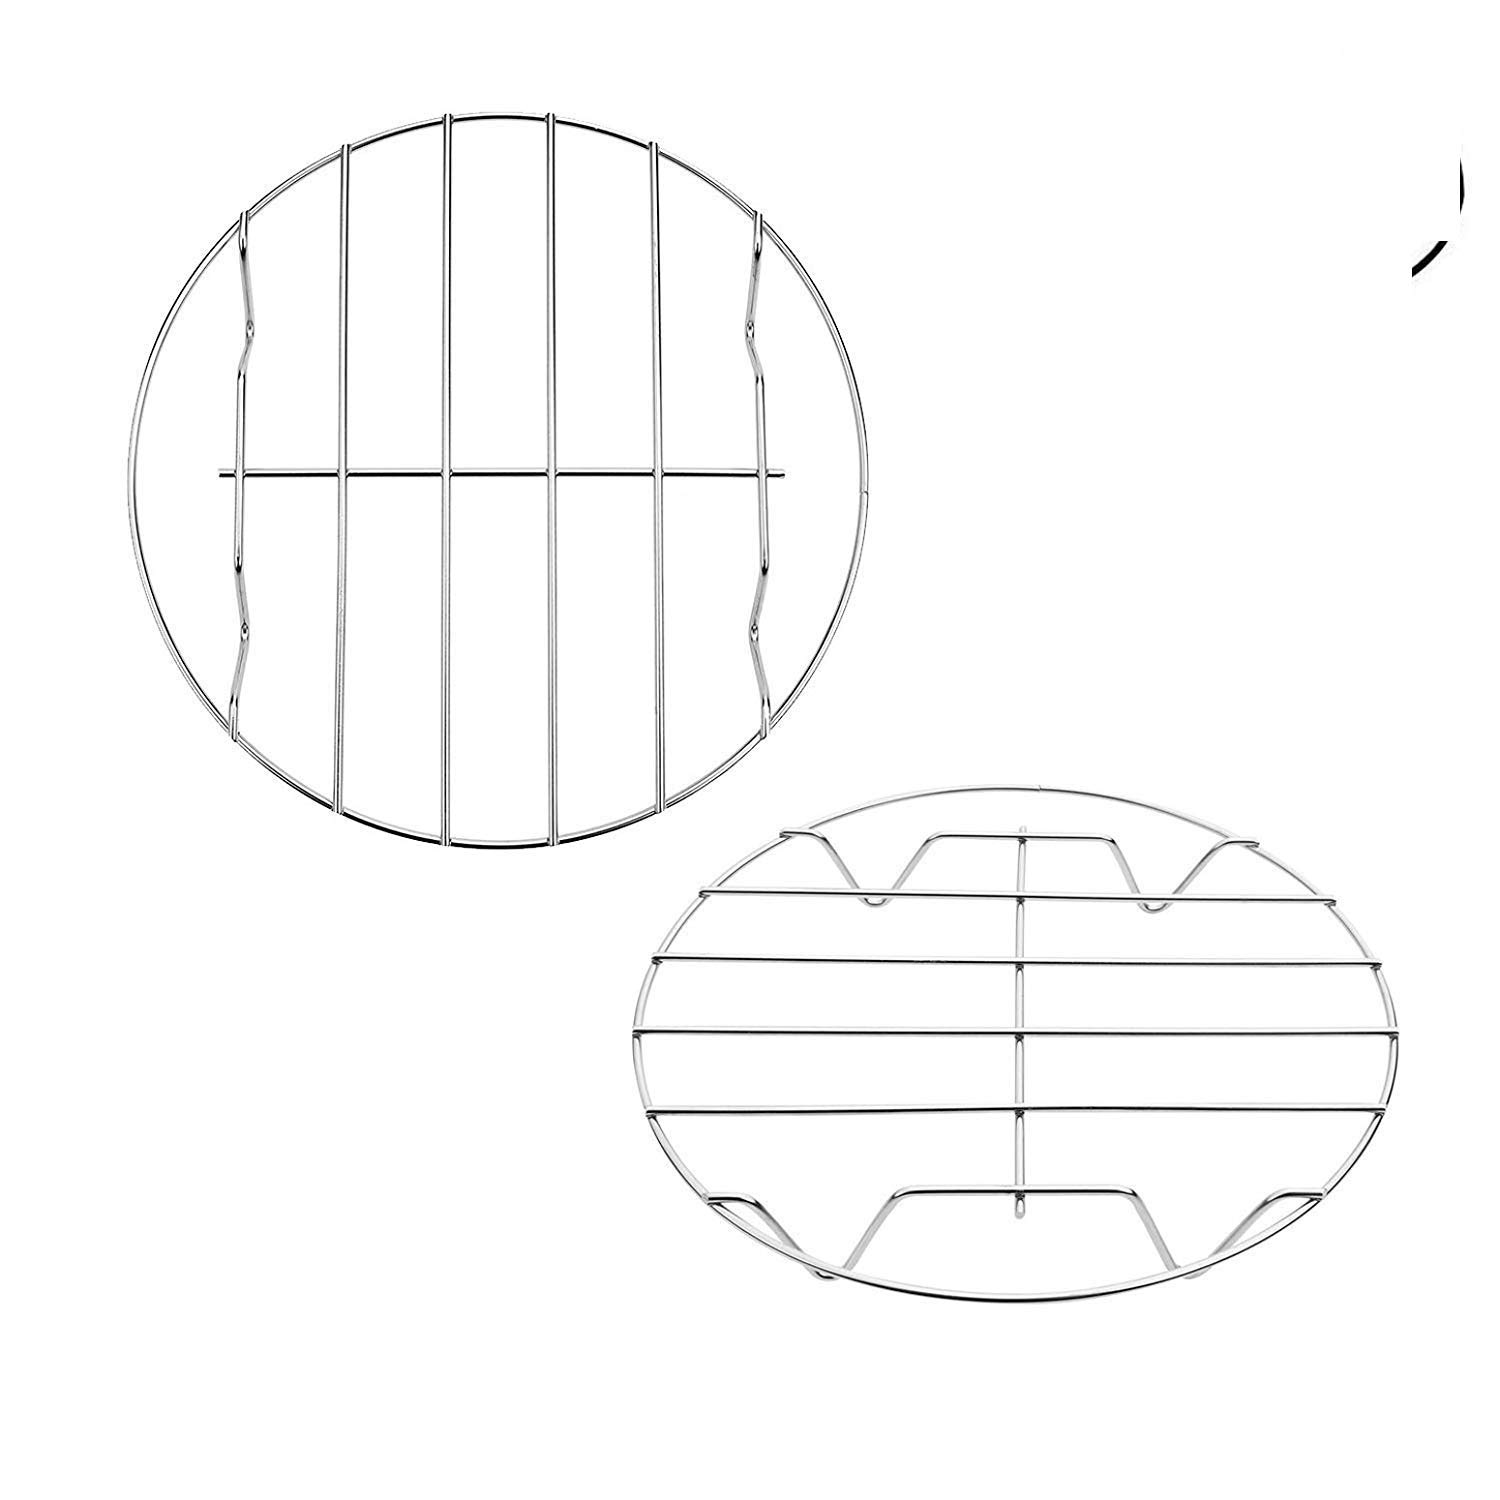 Round Baking and Cooling Rack, 7-Inches Multi-Purpose Stainless Steel w Stand Cookware Fit for Air Fryer Instant Pot Pressure Cooker Canning Set of 2